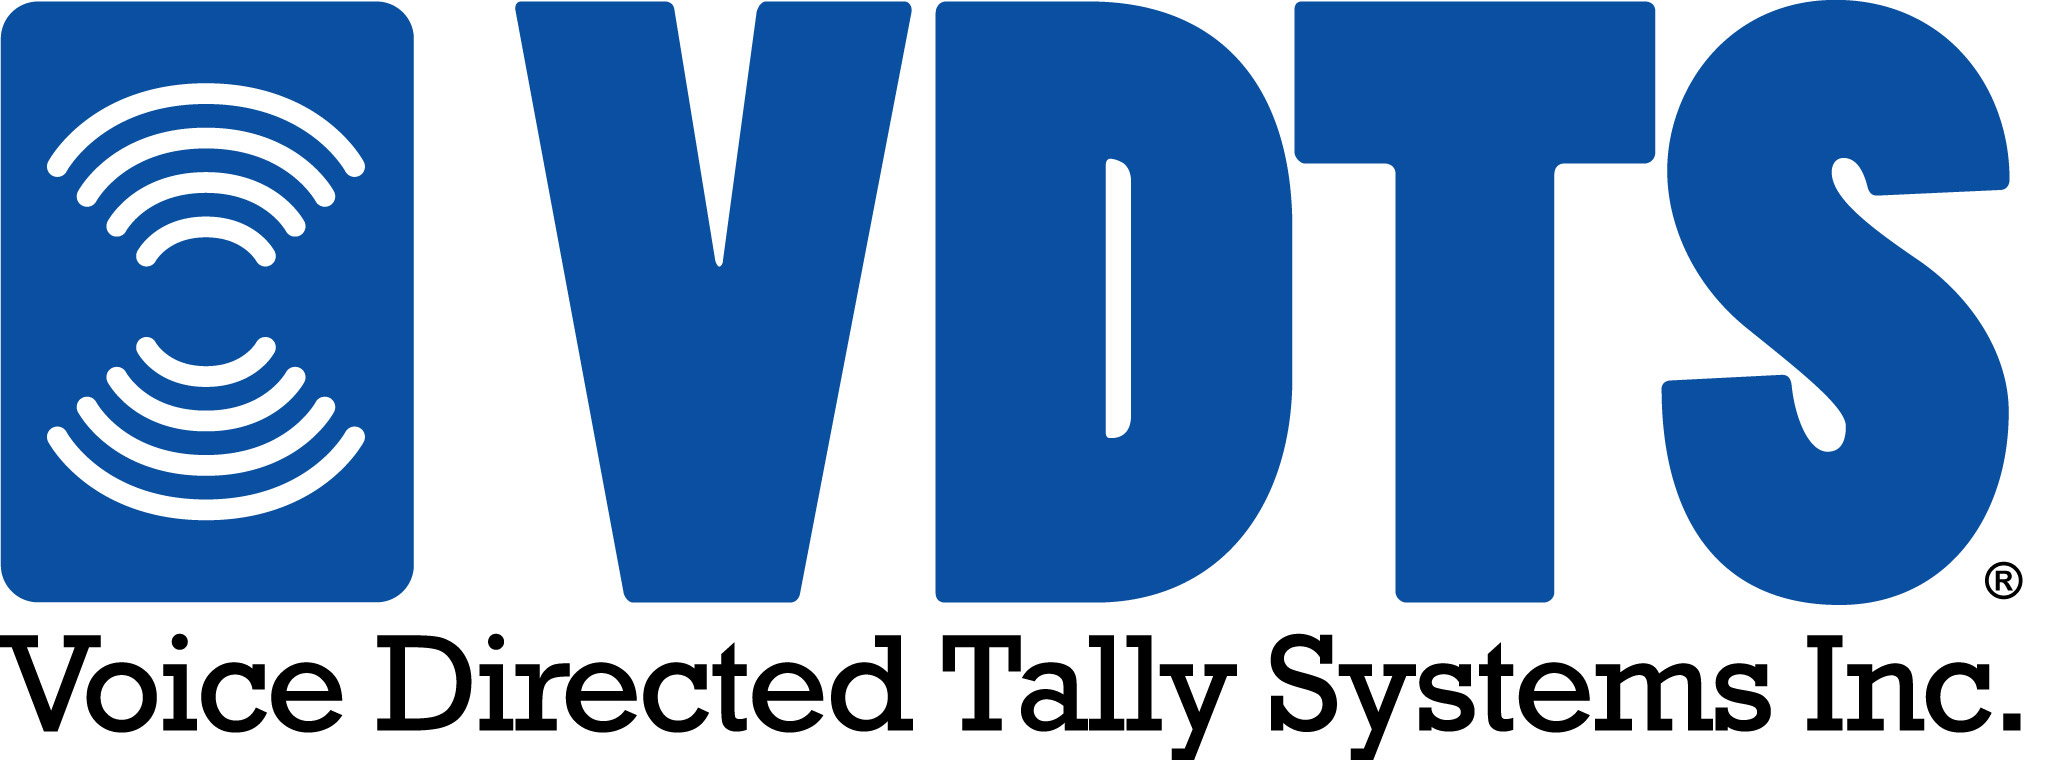 Voice Directed Tally Systems, Inc.